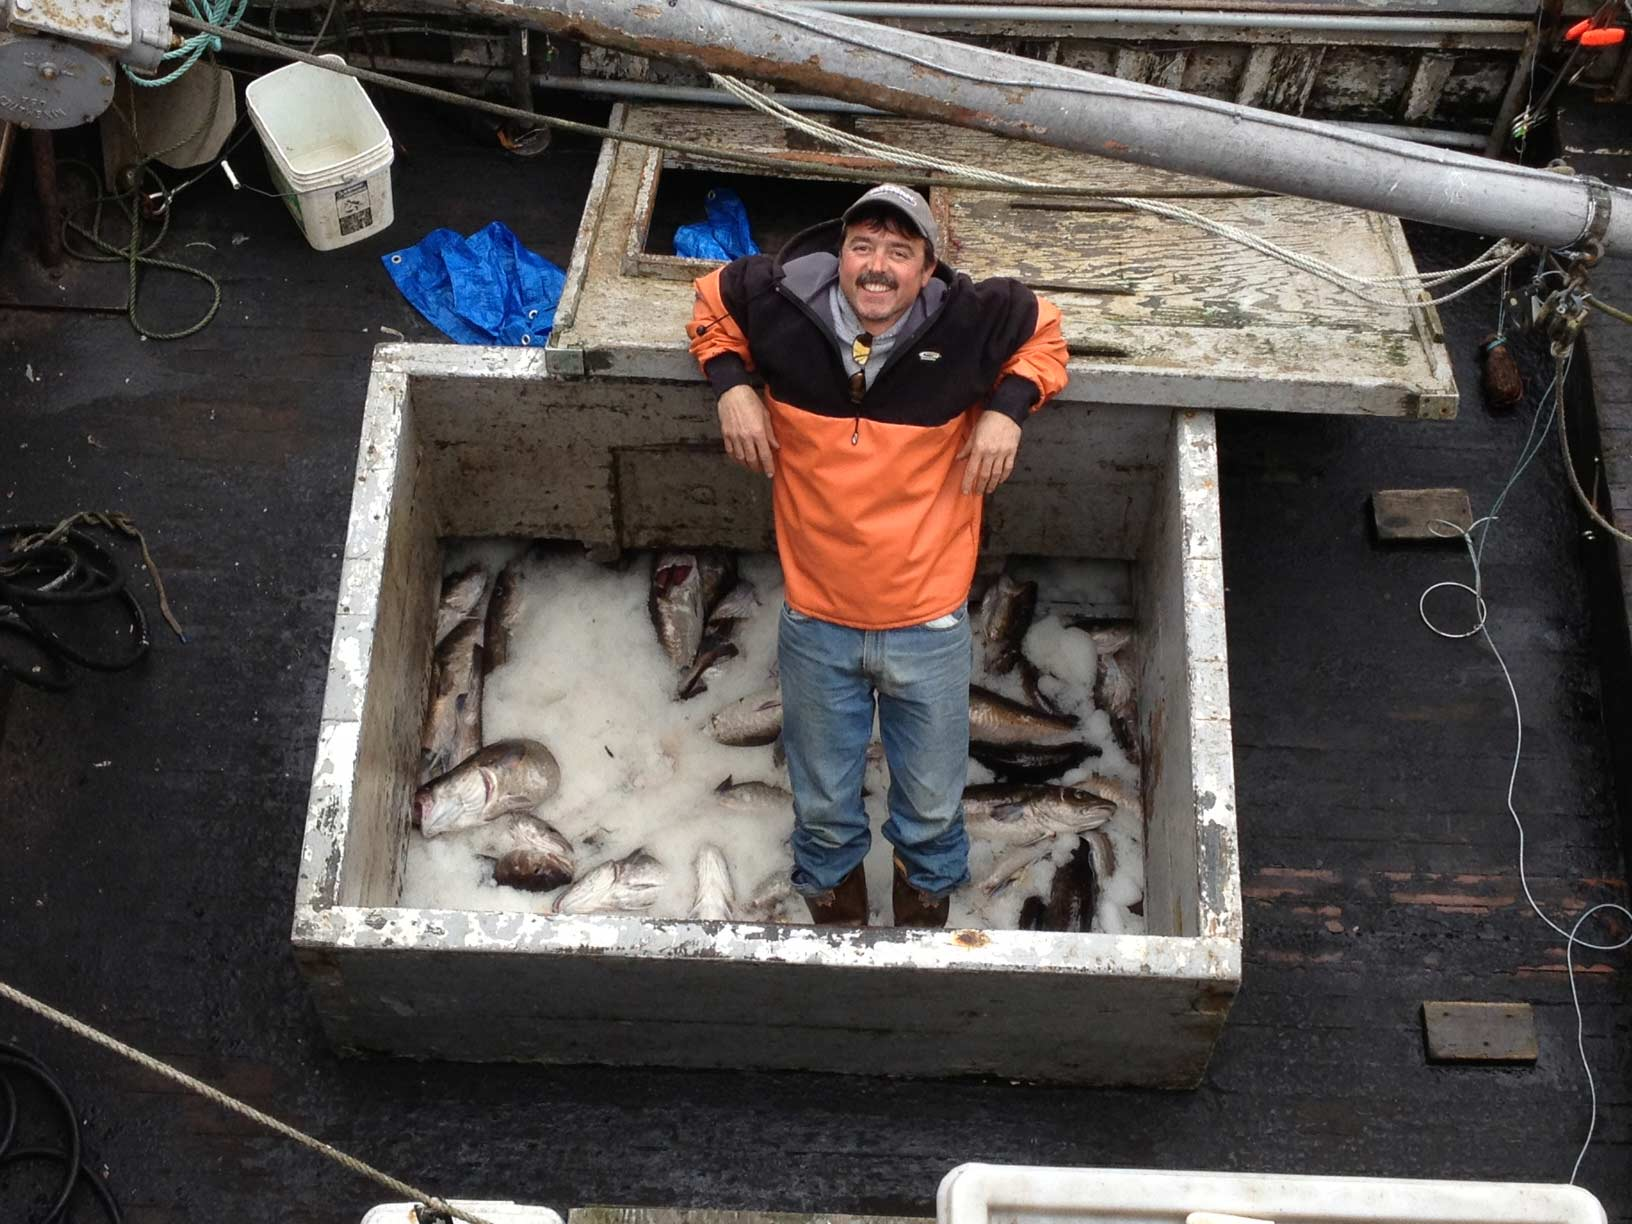 Kodiak Fisherman, Darius Kasperzak, swimming in Pacific cod - circa 2013